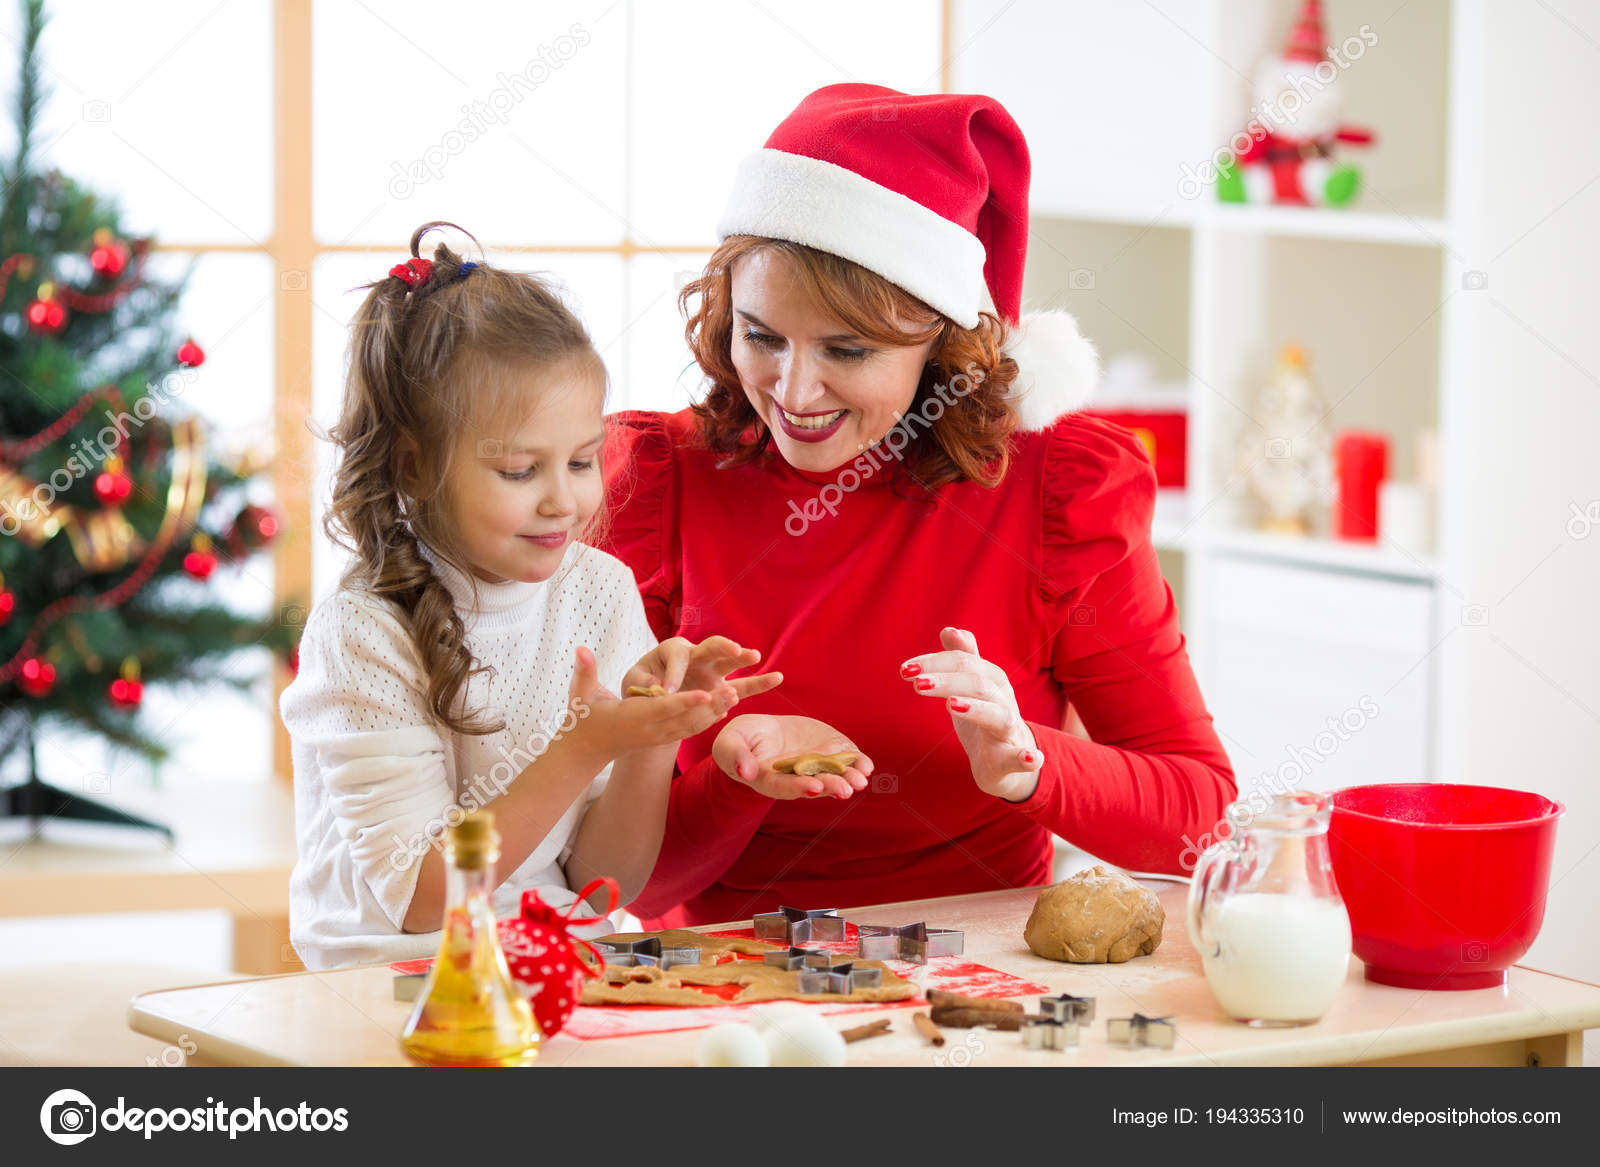 Photo Mom And Daughter Christmas Ideas Mother And Daughter Baking Christmas Cookies At Decorated Tree Mom And Child Bake Xmas Sweets Family With Kids Celebrating Christmas At Home Stock Photo C